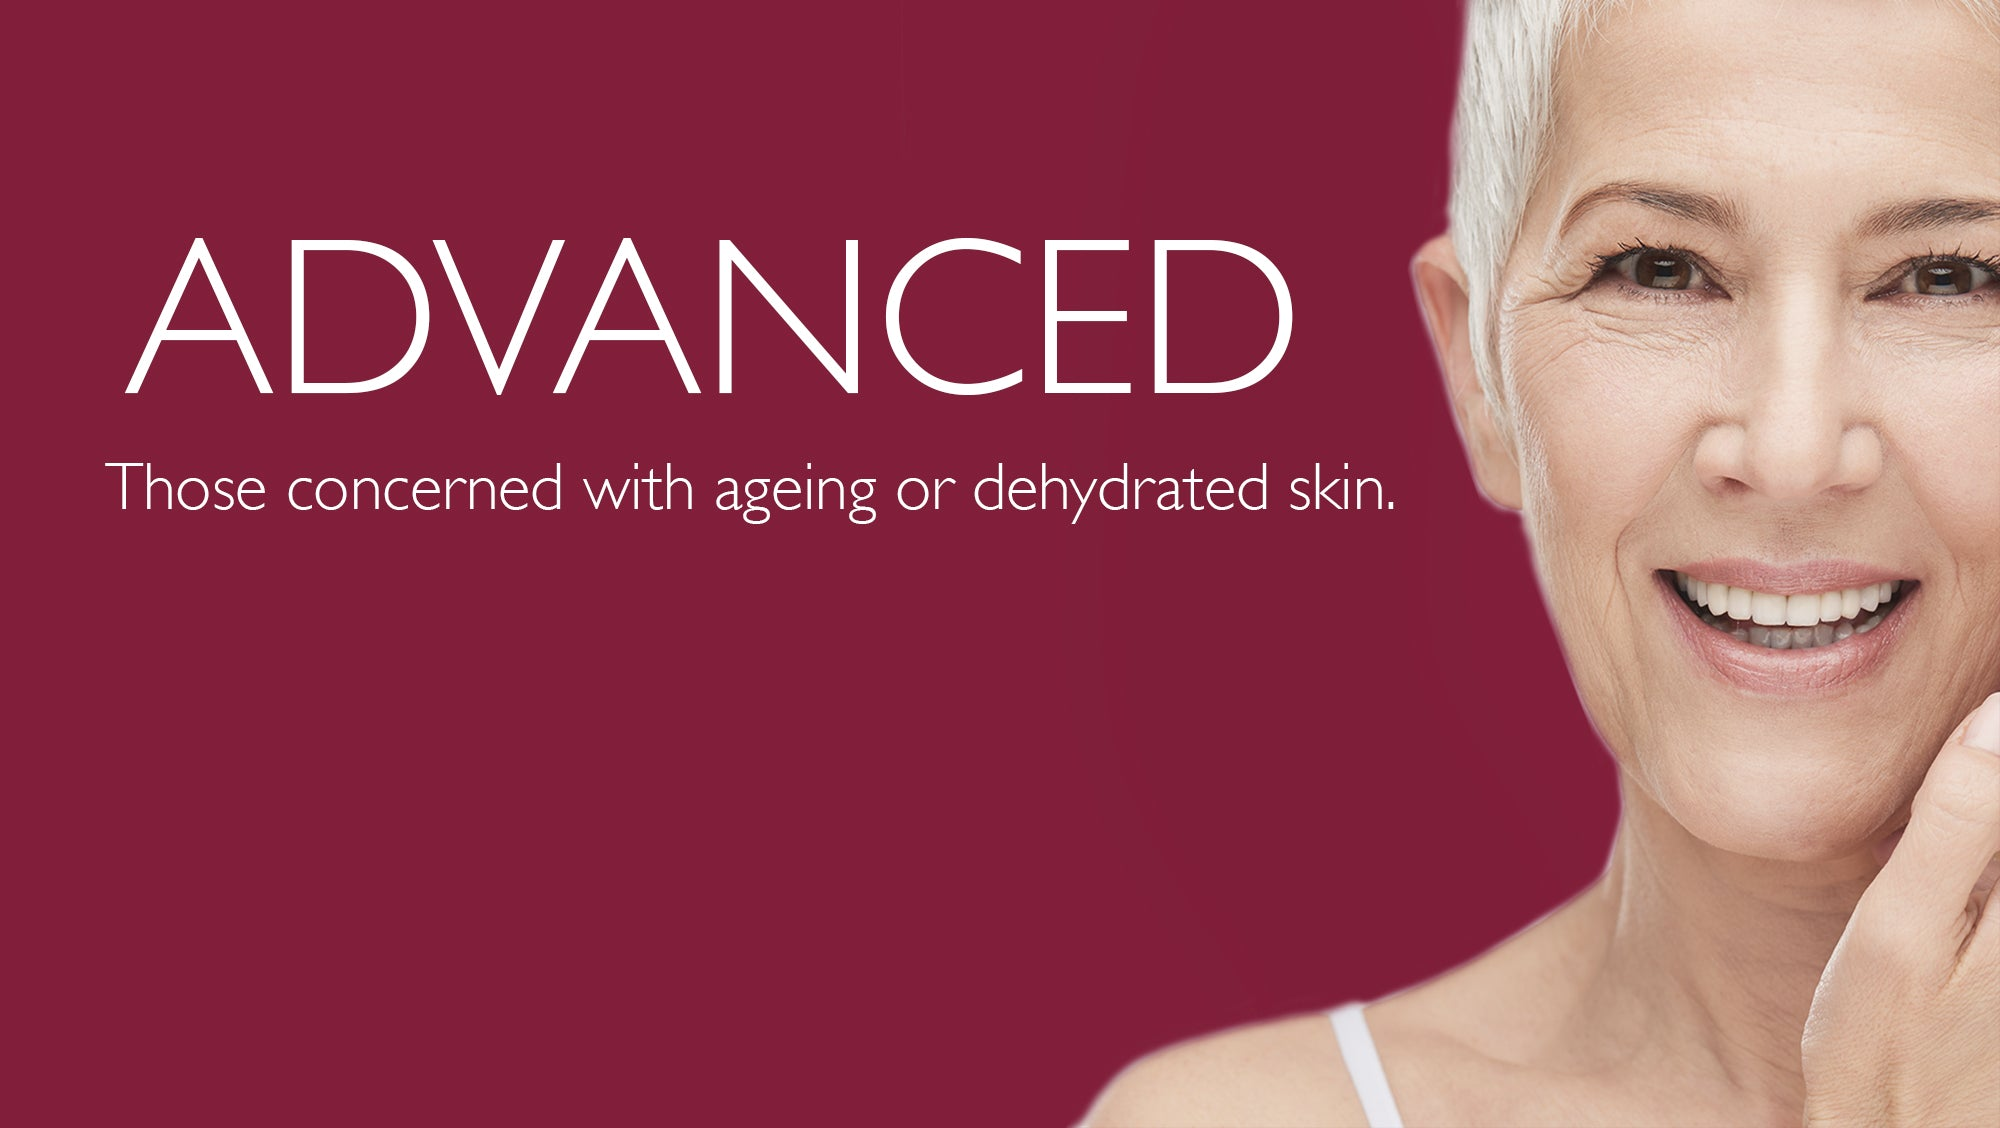 Let's talk about the SKINICIAN Advanced System